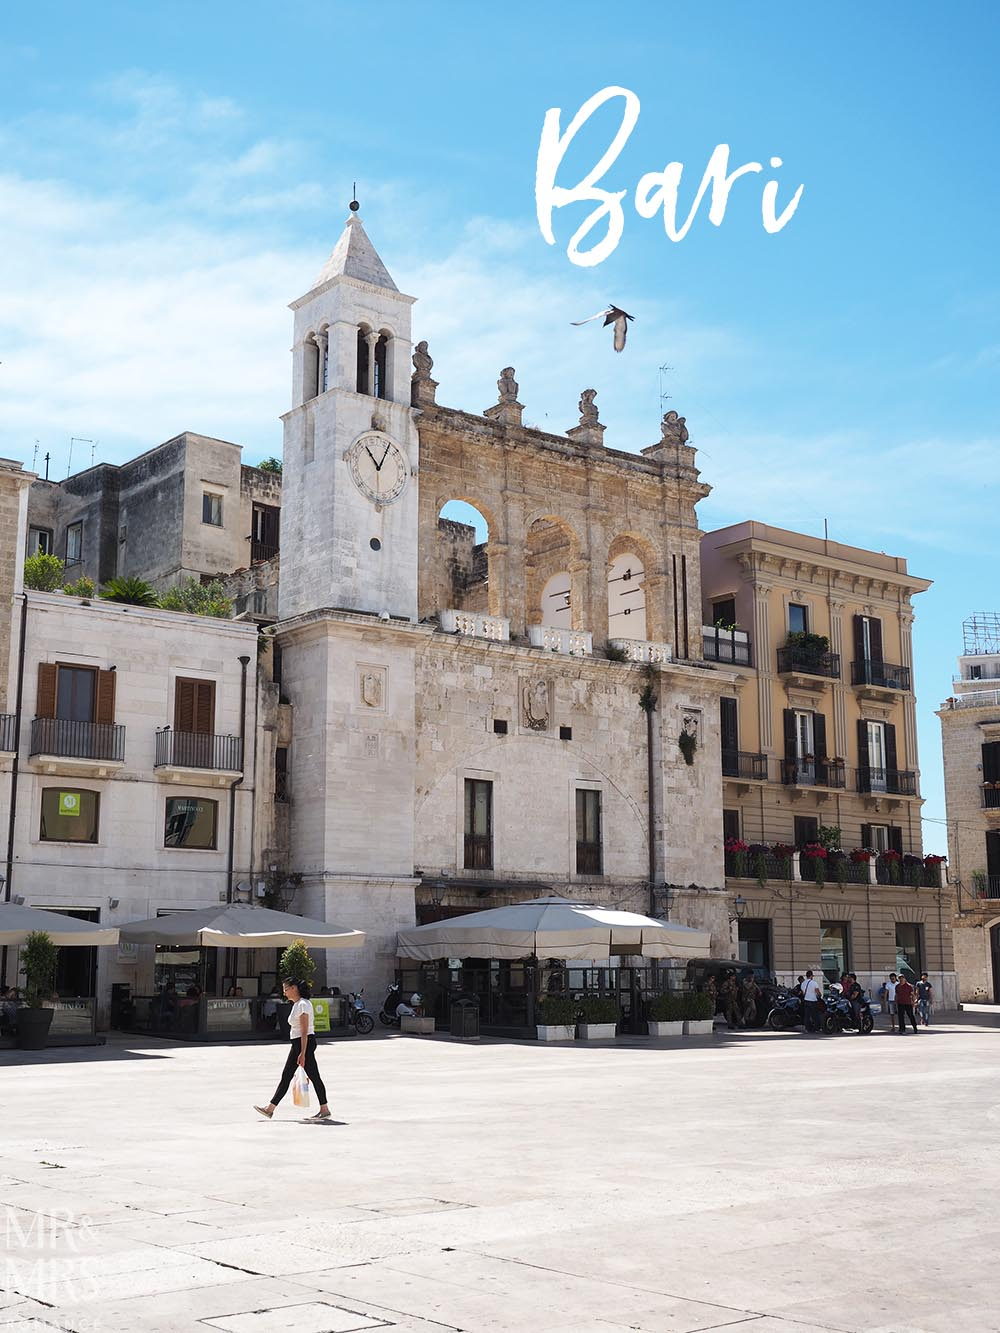 Top 10 towns of Puglia, Italy - Bari